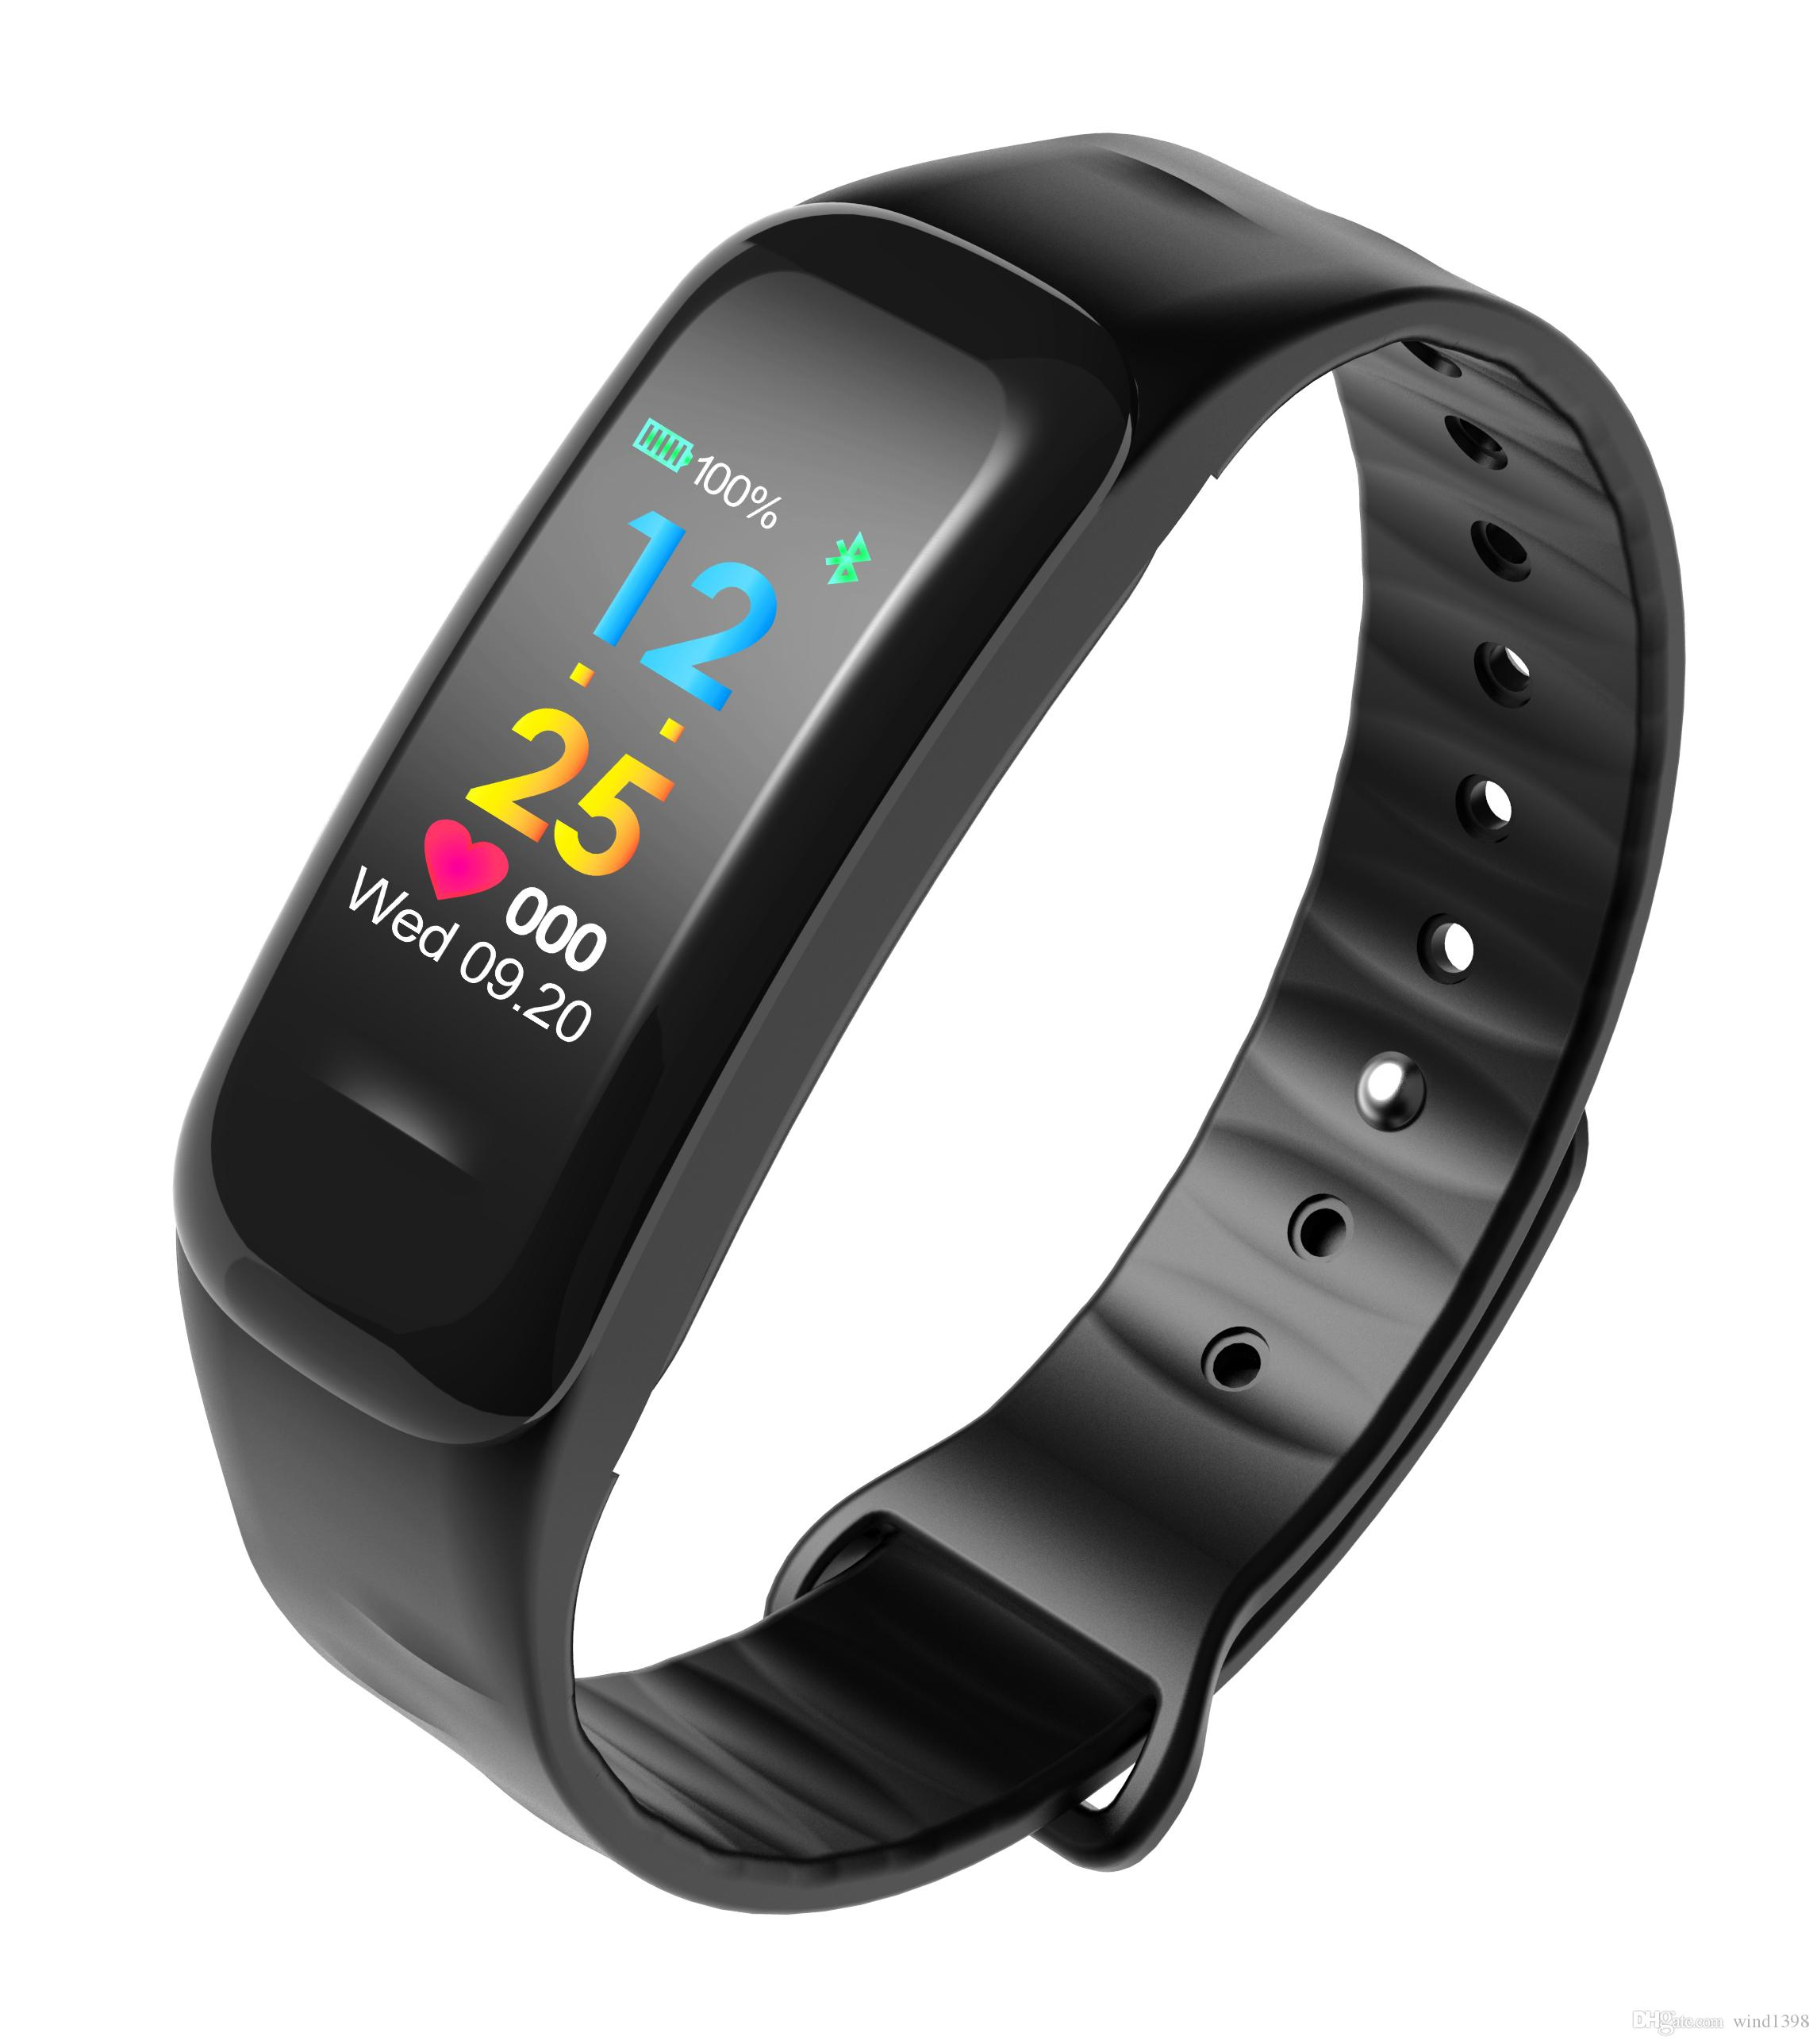 your great ionic it watches transform training a still well smartwatch best such one as developed app features lacking technology market make first wearable running s that tracker fitness or gps truly tracking watch with would is two fitbit